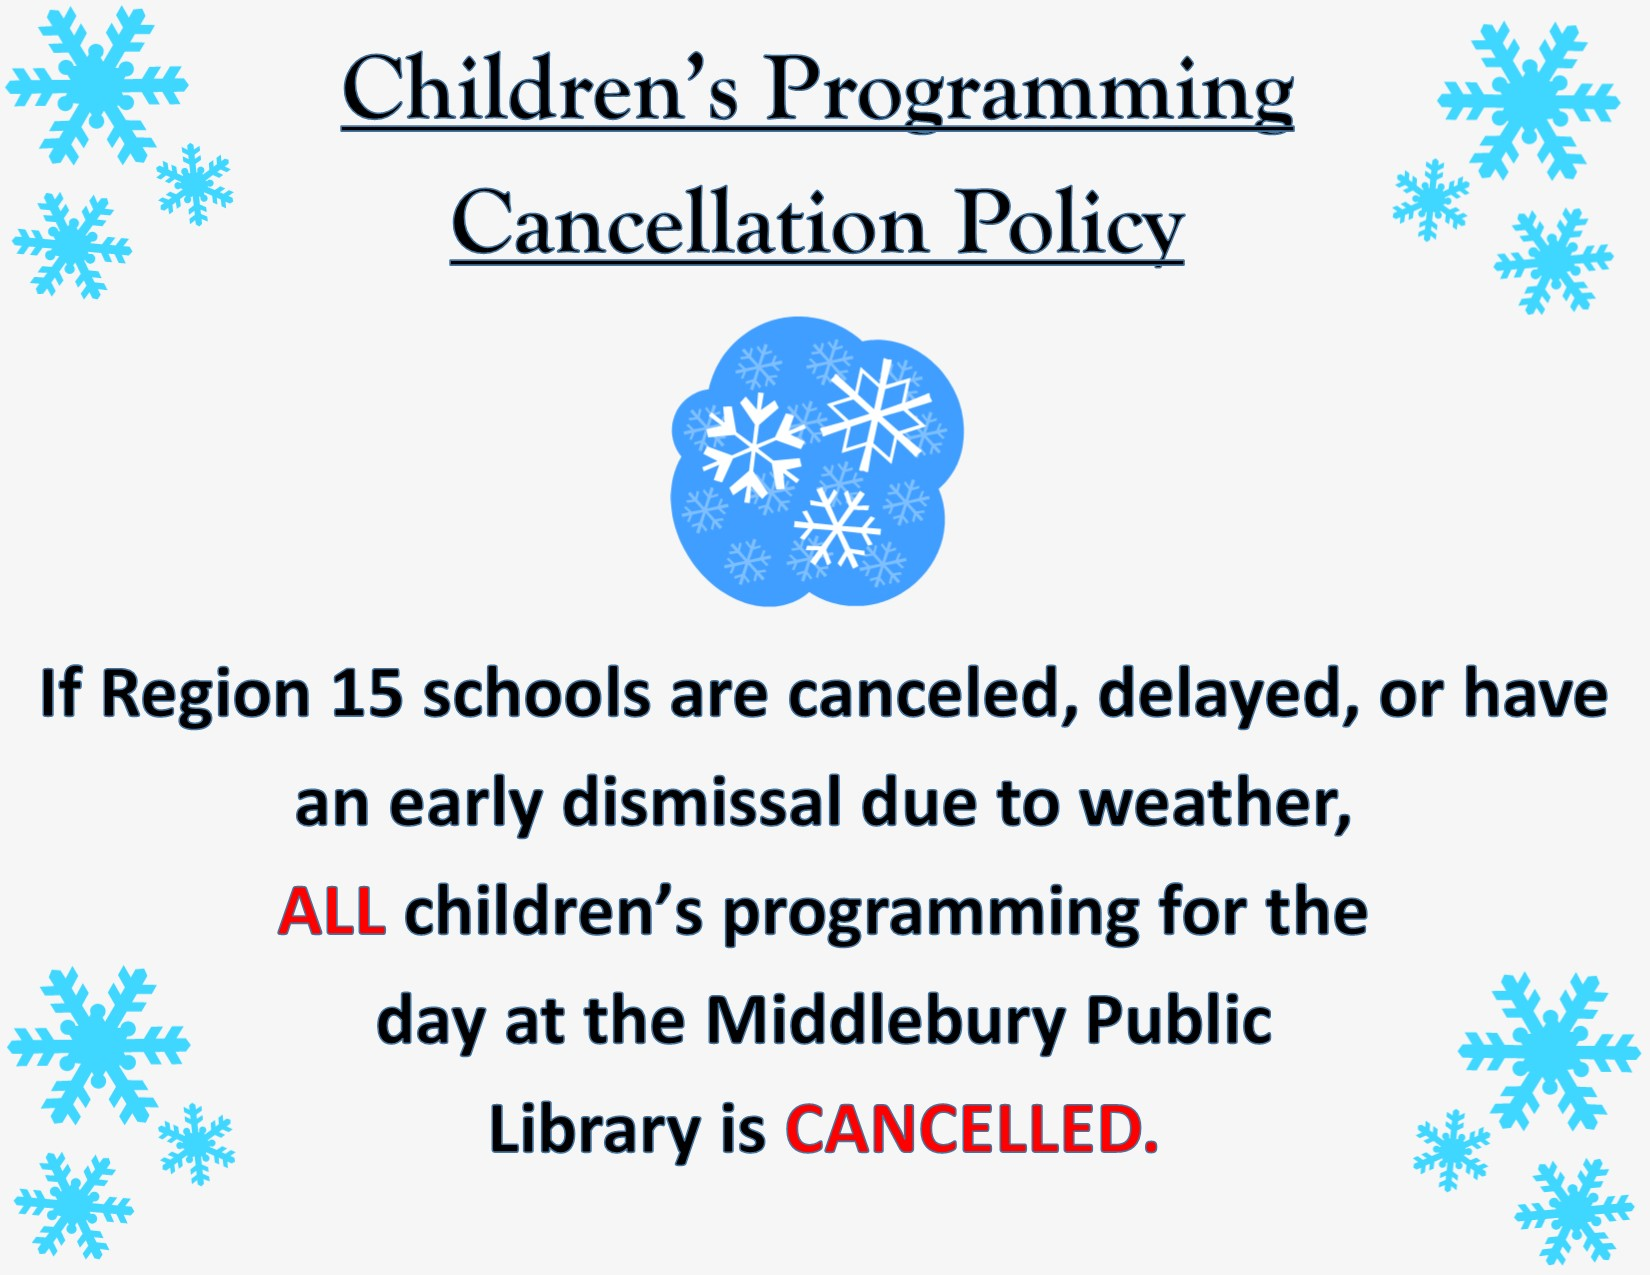 Children'sProgrammingCancellationPolicy-01-JPG